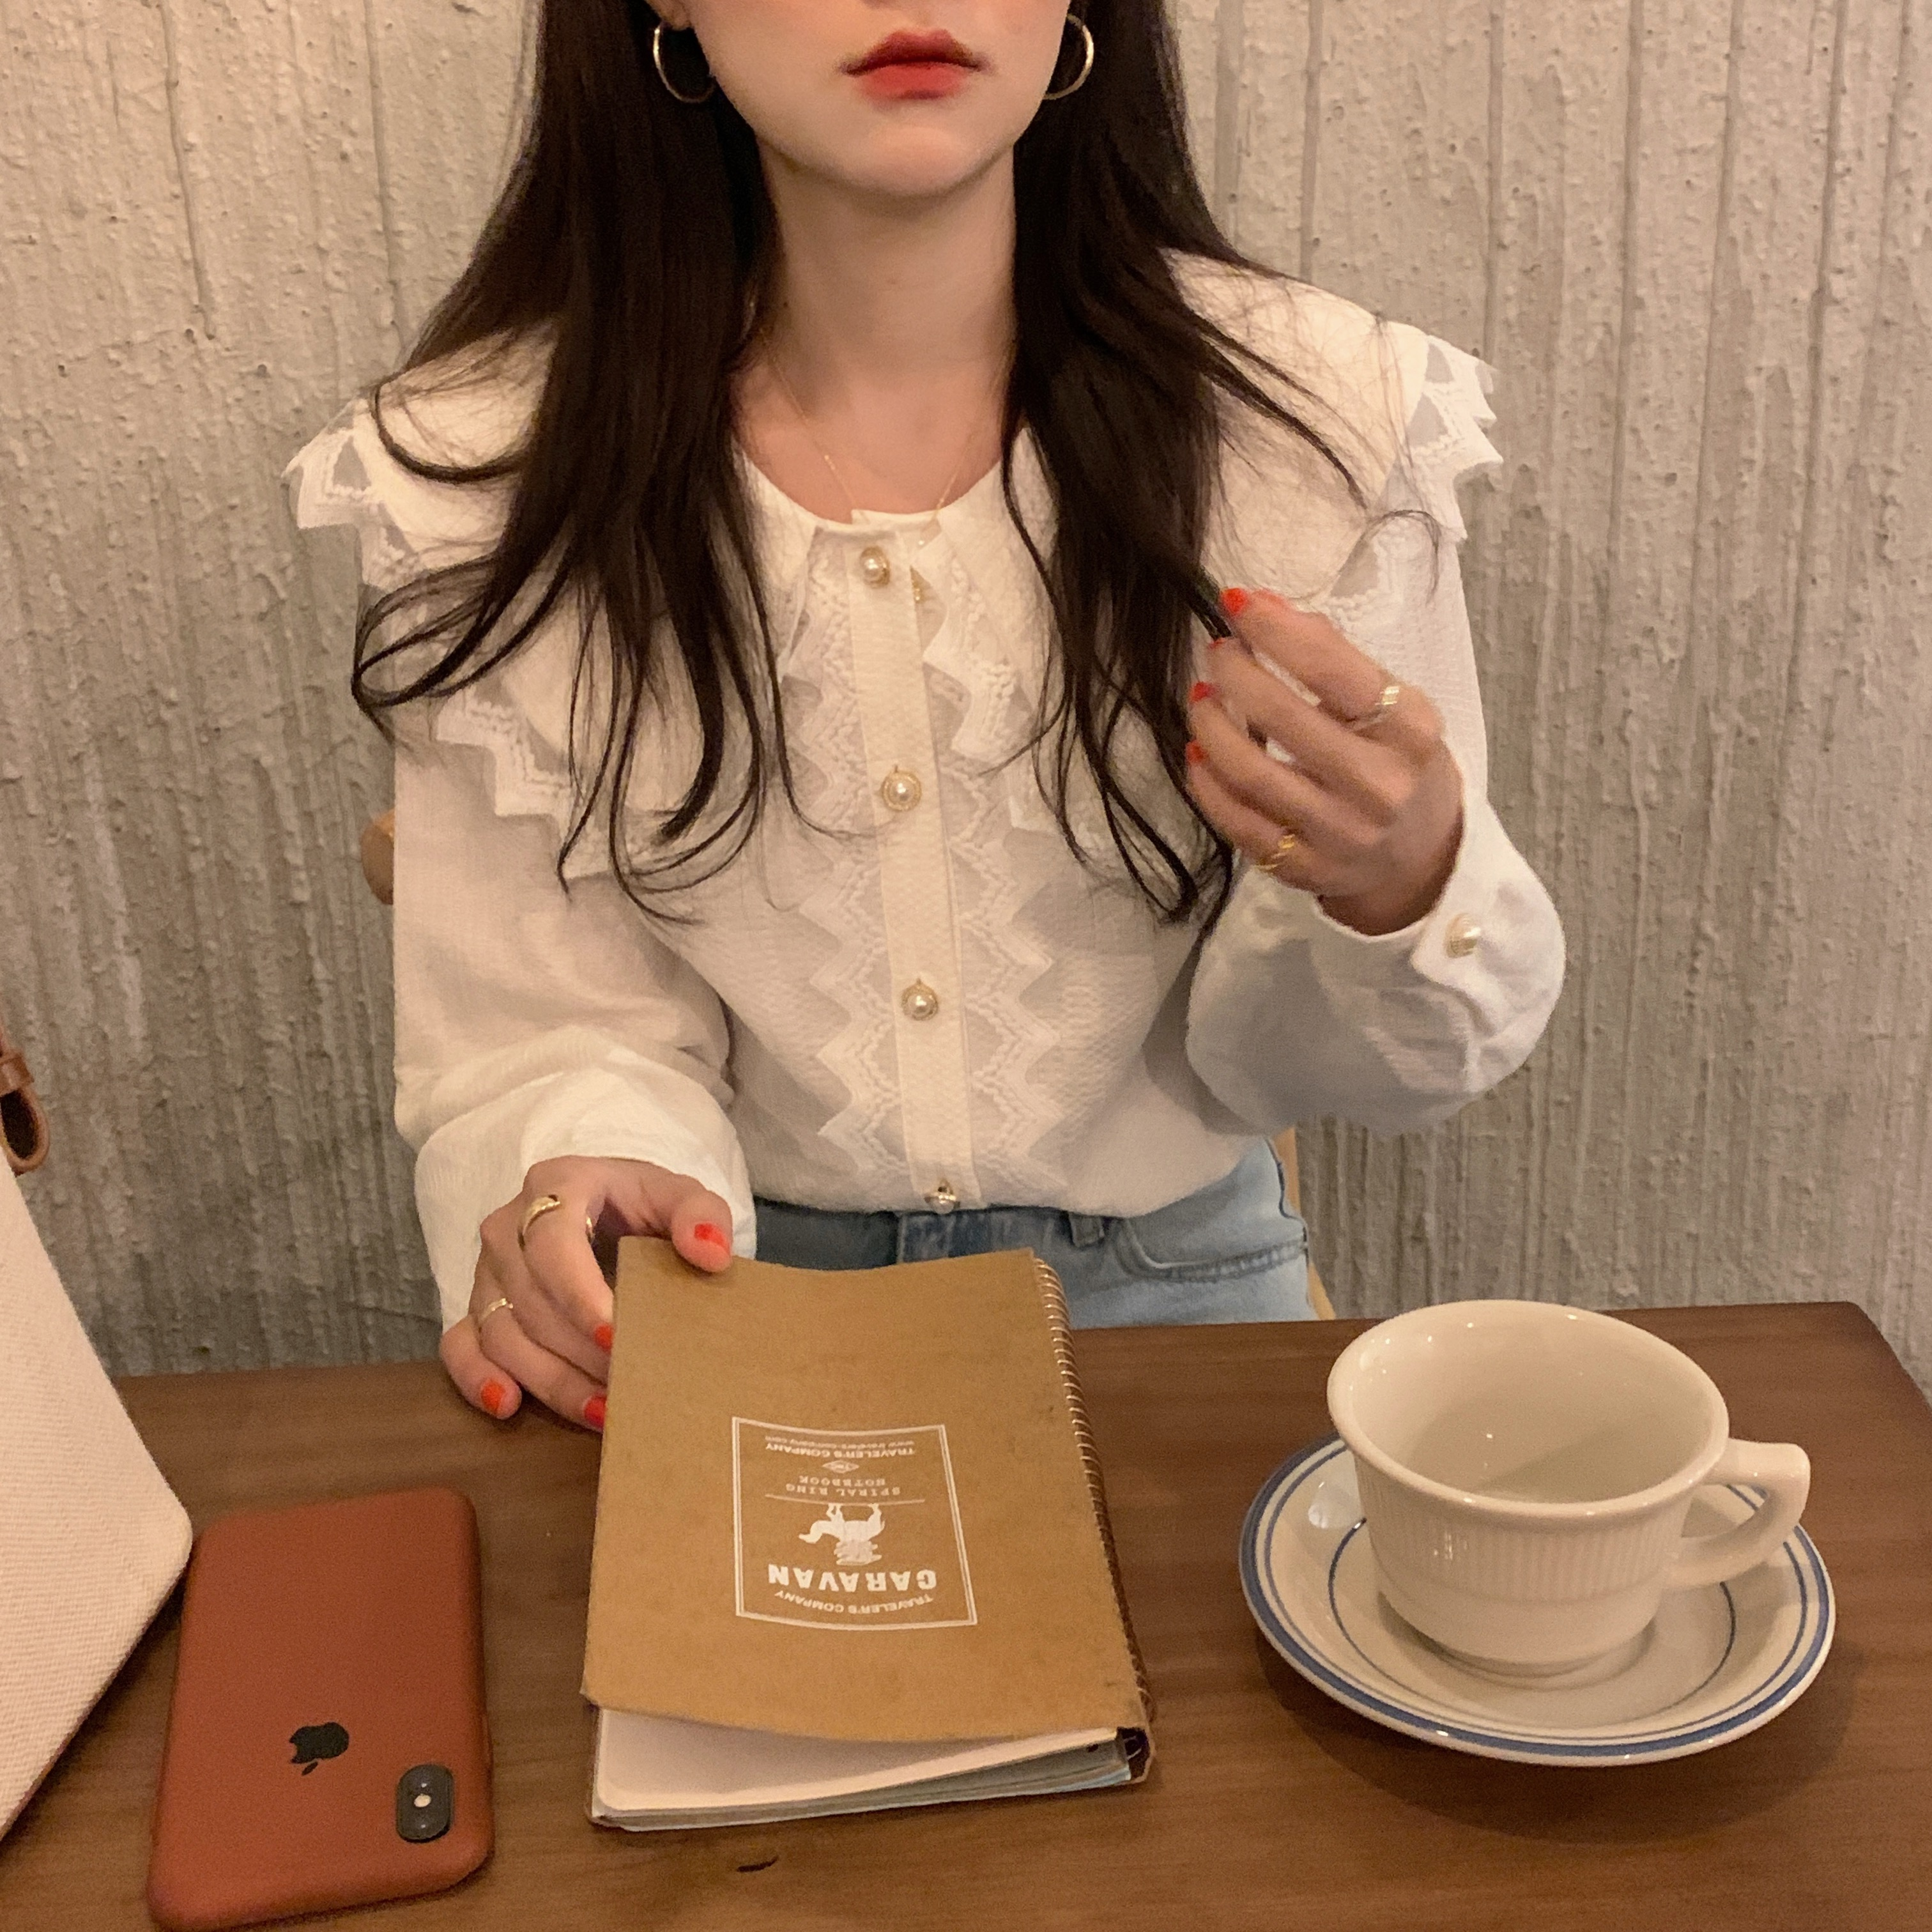 H681d24bfce914d2fab9bdae328d373f3A - Spring / Autumn Big Lapel Collar Long Sleeves Lace Buttons Solid Blouse